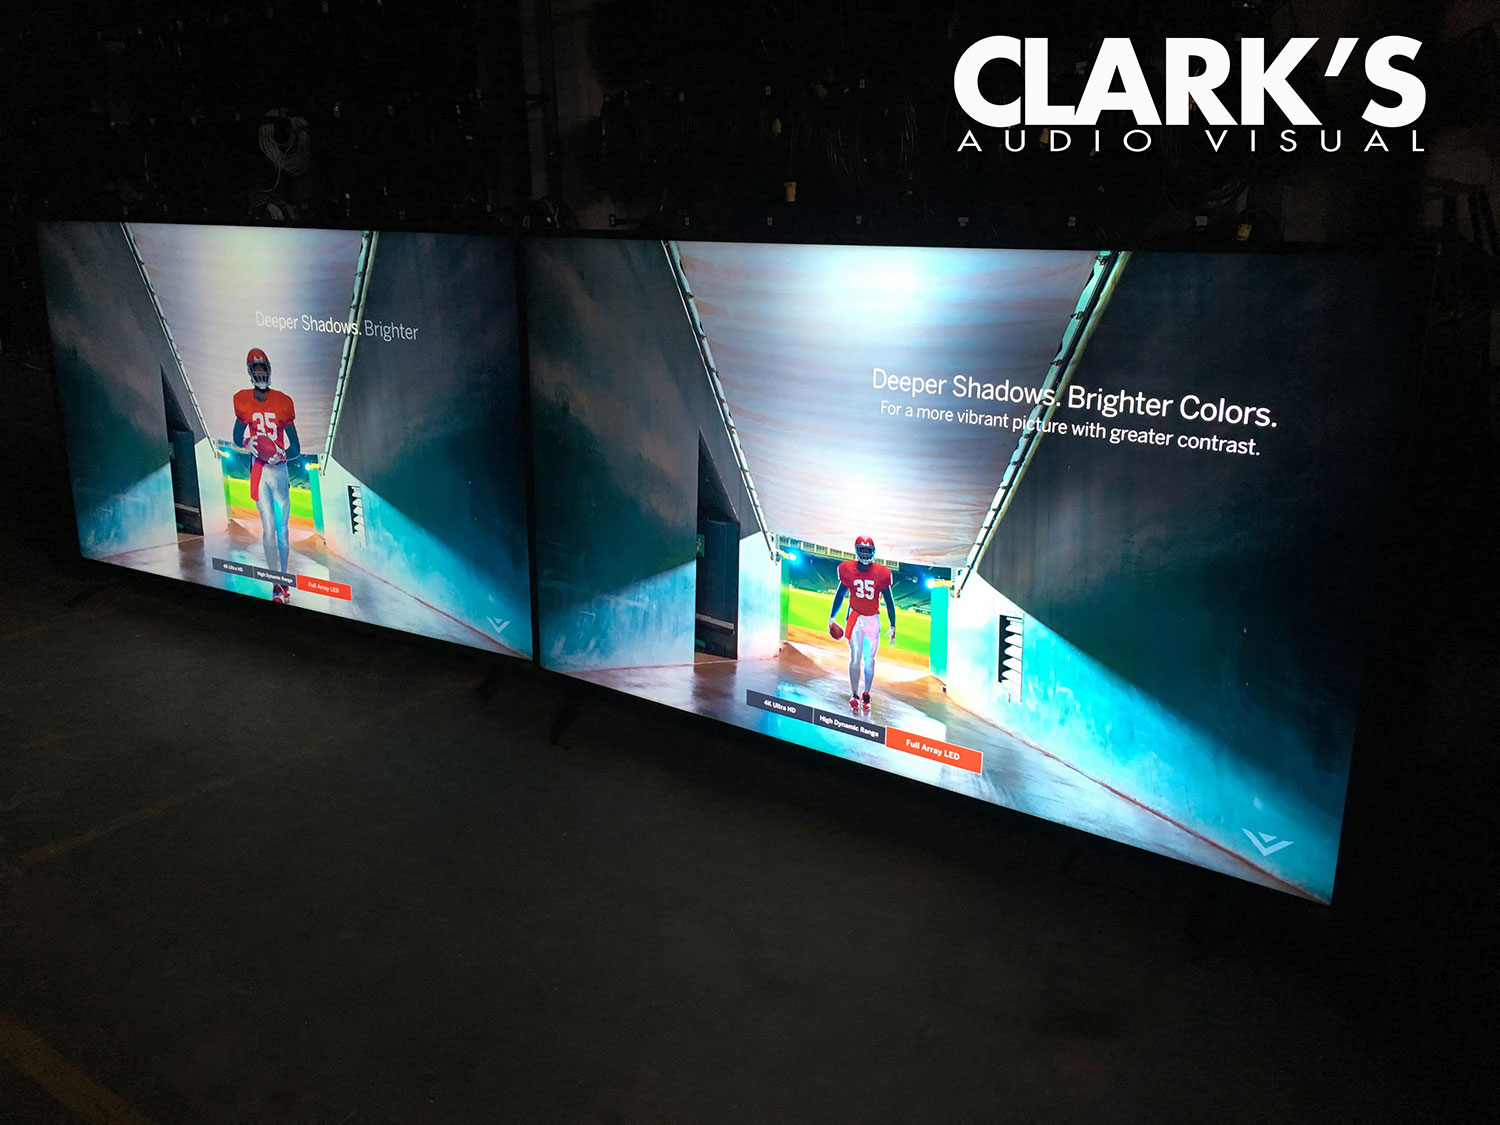 Clark's Audio Visual  4K LED Monitors